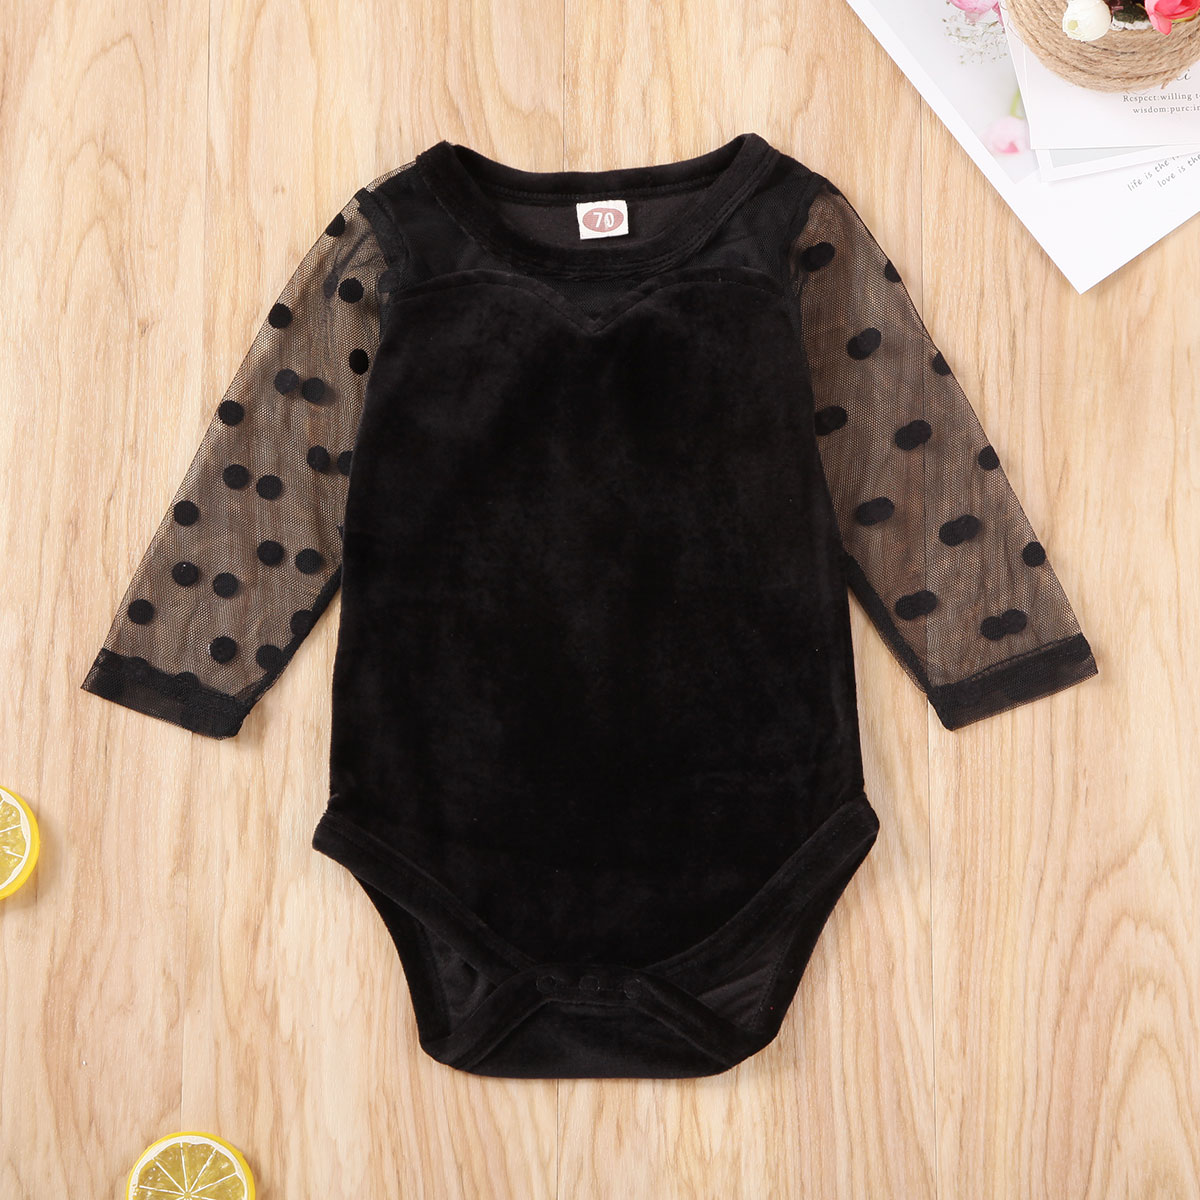 Pudcoco Newborn Baby Girl Clothes Solid Color Lace Mesh Long Sleeve Velvet Romper Jumpsuit One-Piece Outfit Bowknot Clothes